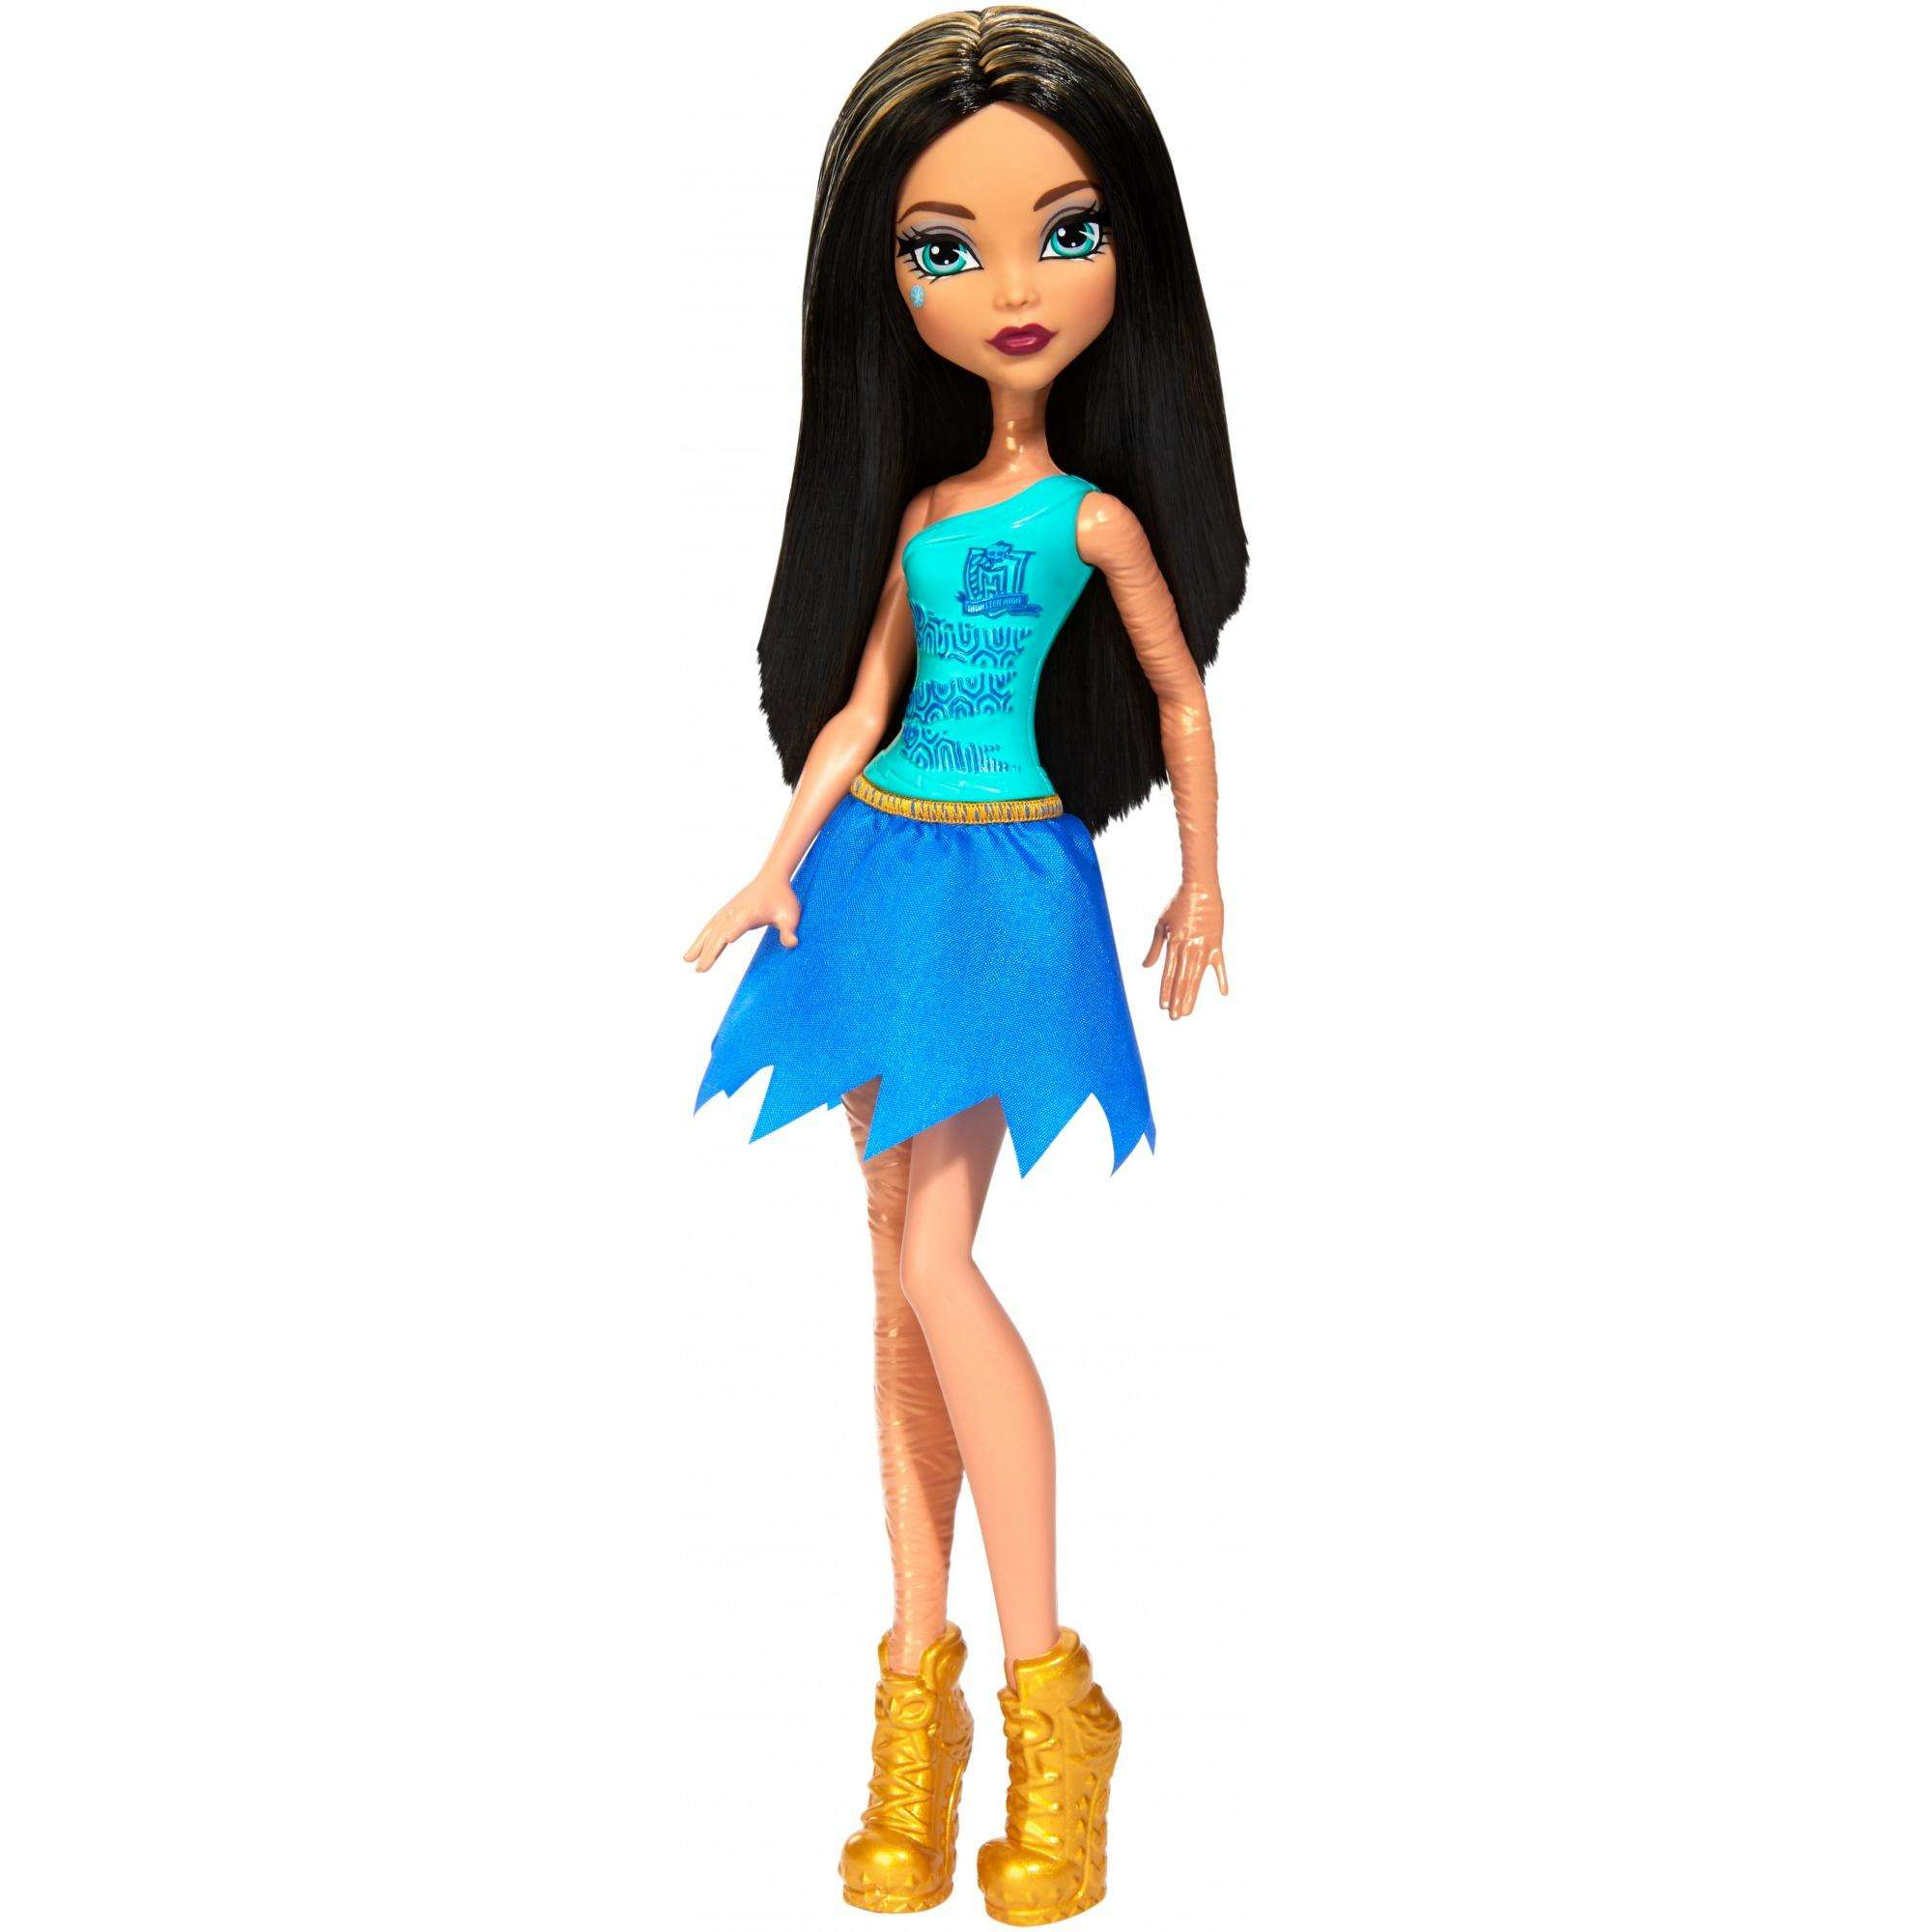 Monster High Cheerleader Cleo De Nile Doll by MATTEL INC.